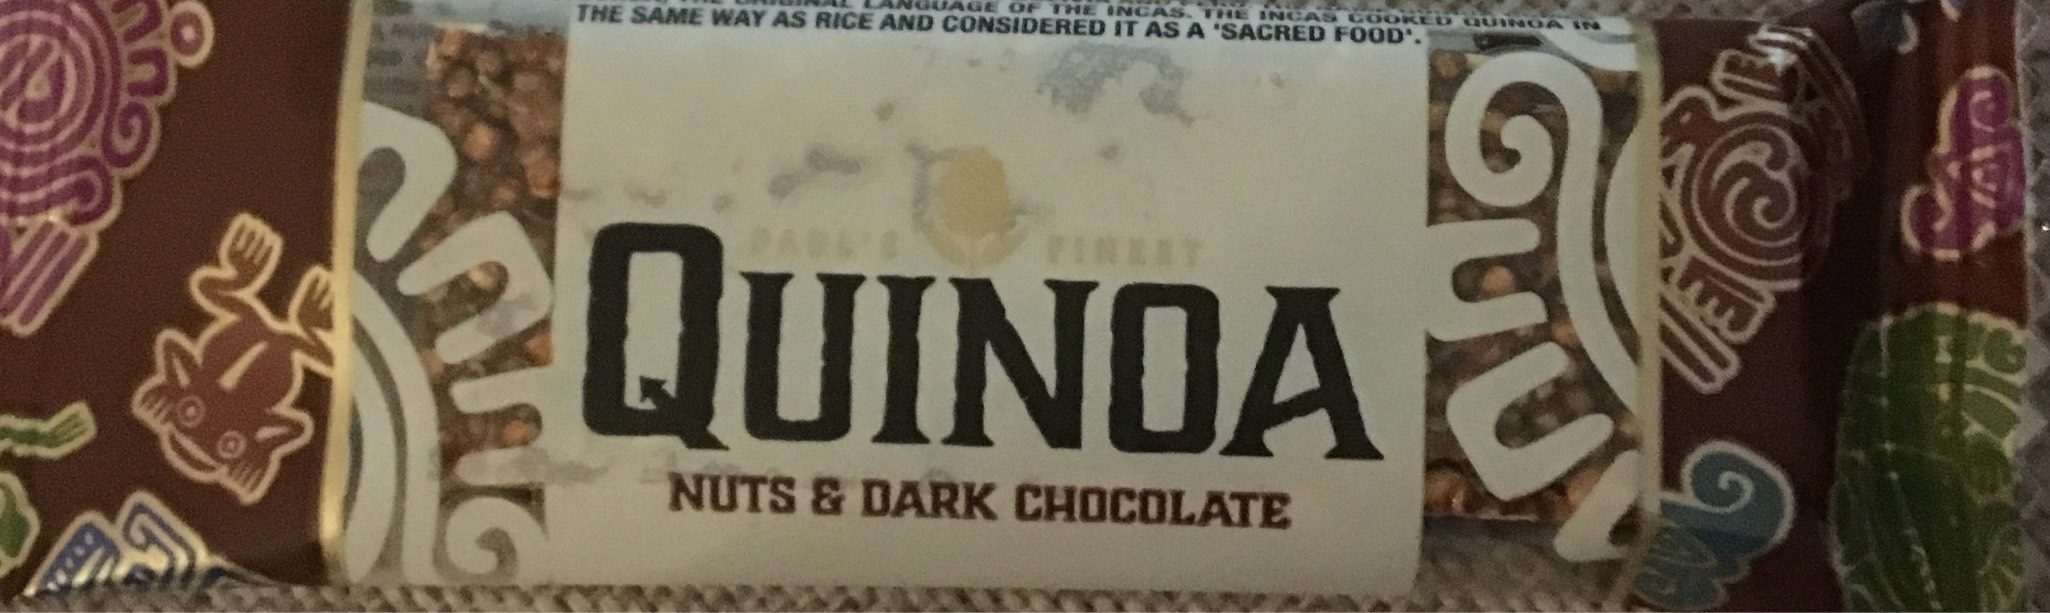 Quinoa Nuts and Dark Chocolate - Product